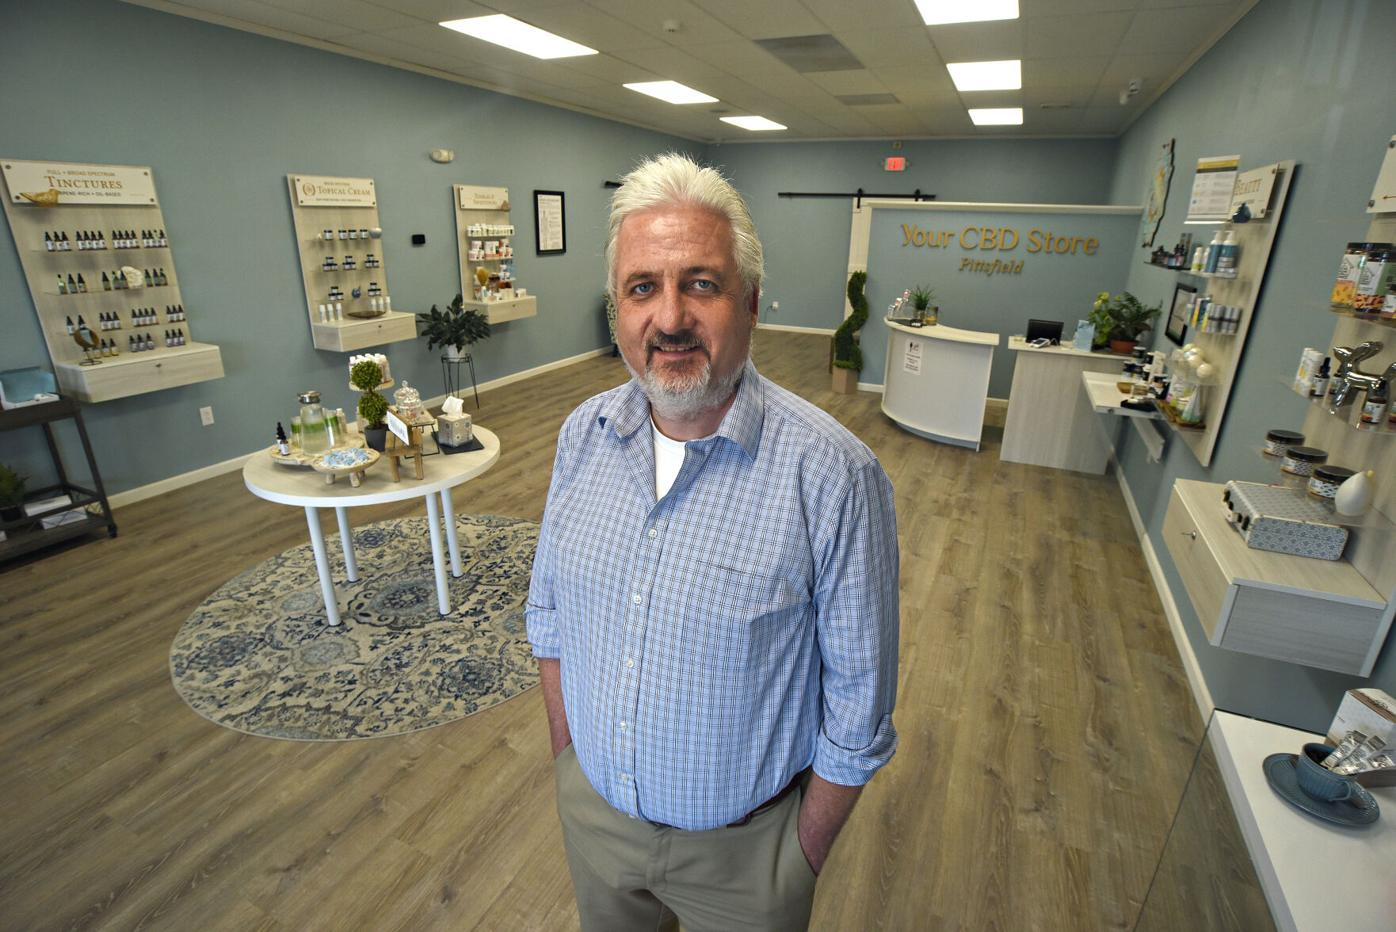 Owner Jim Bronson at Your CBD Store in Pittsfield